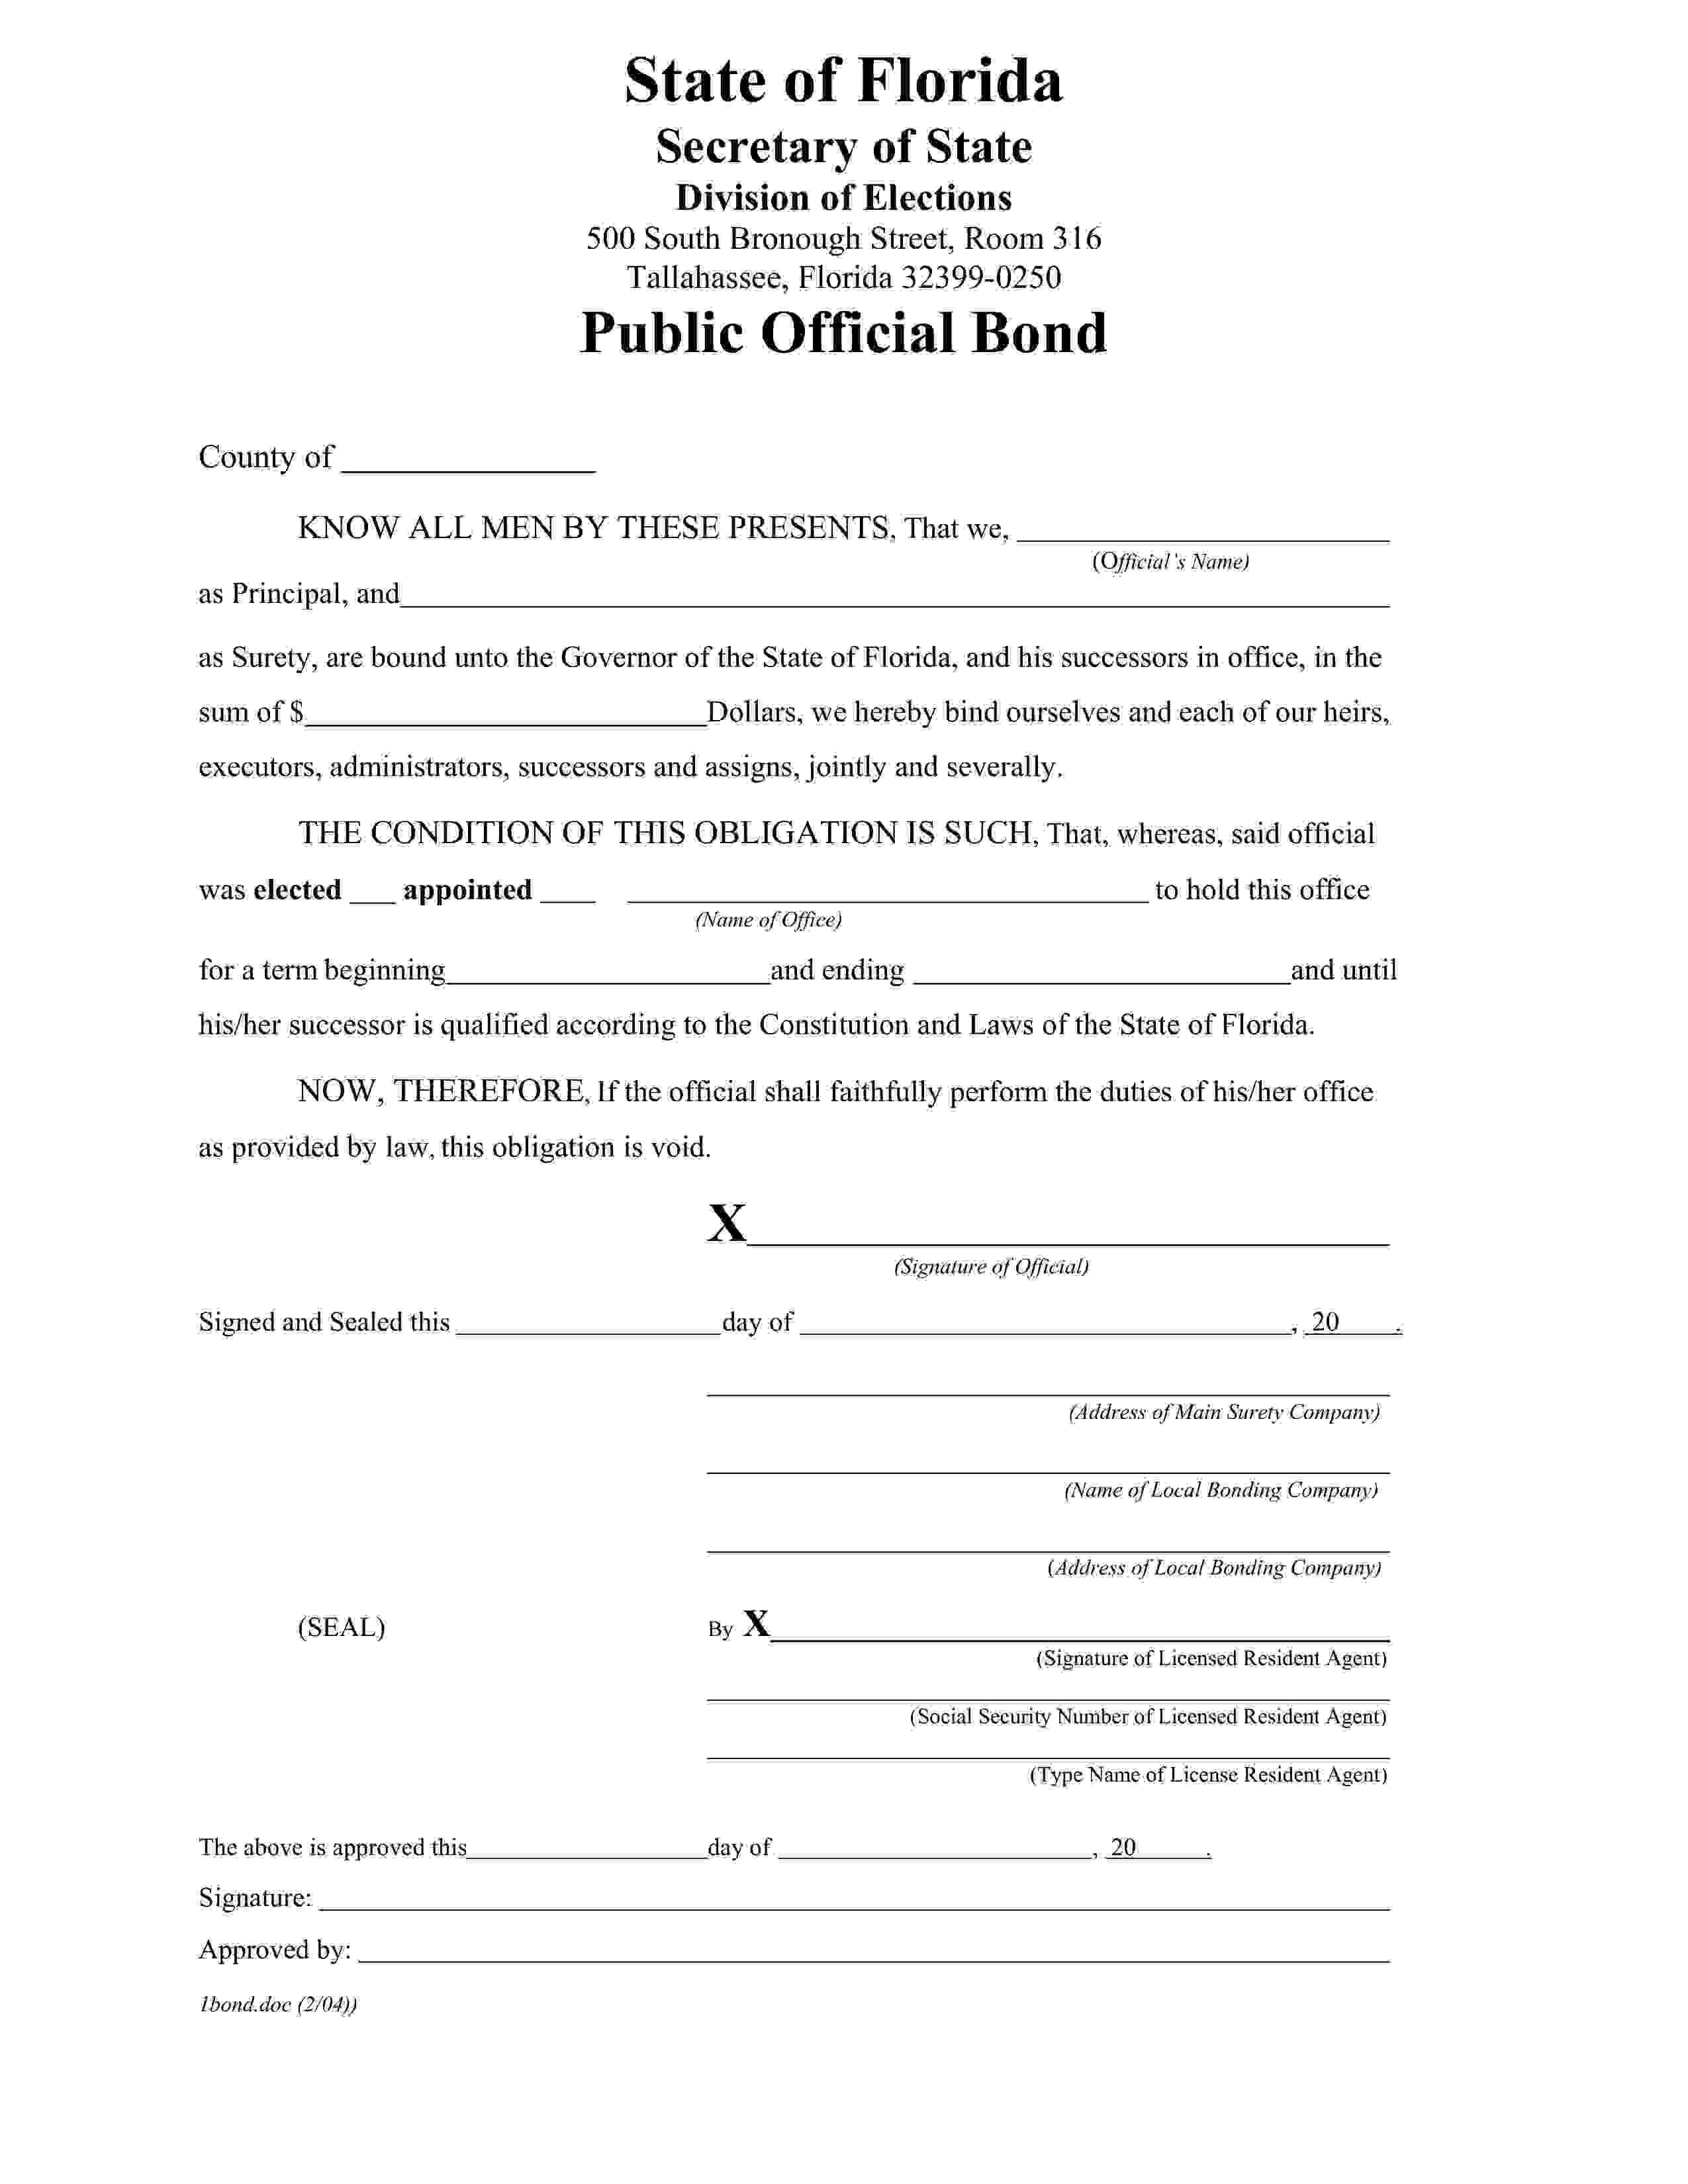 Florida Secretary Of State Treasurer or Tax Collector up to Bond sample image